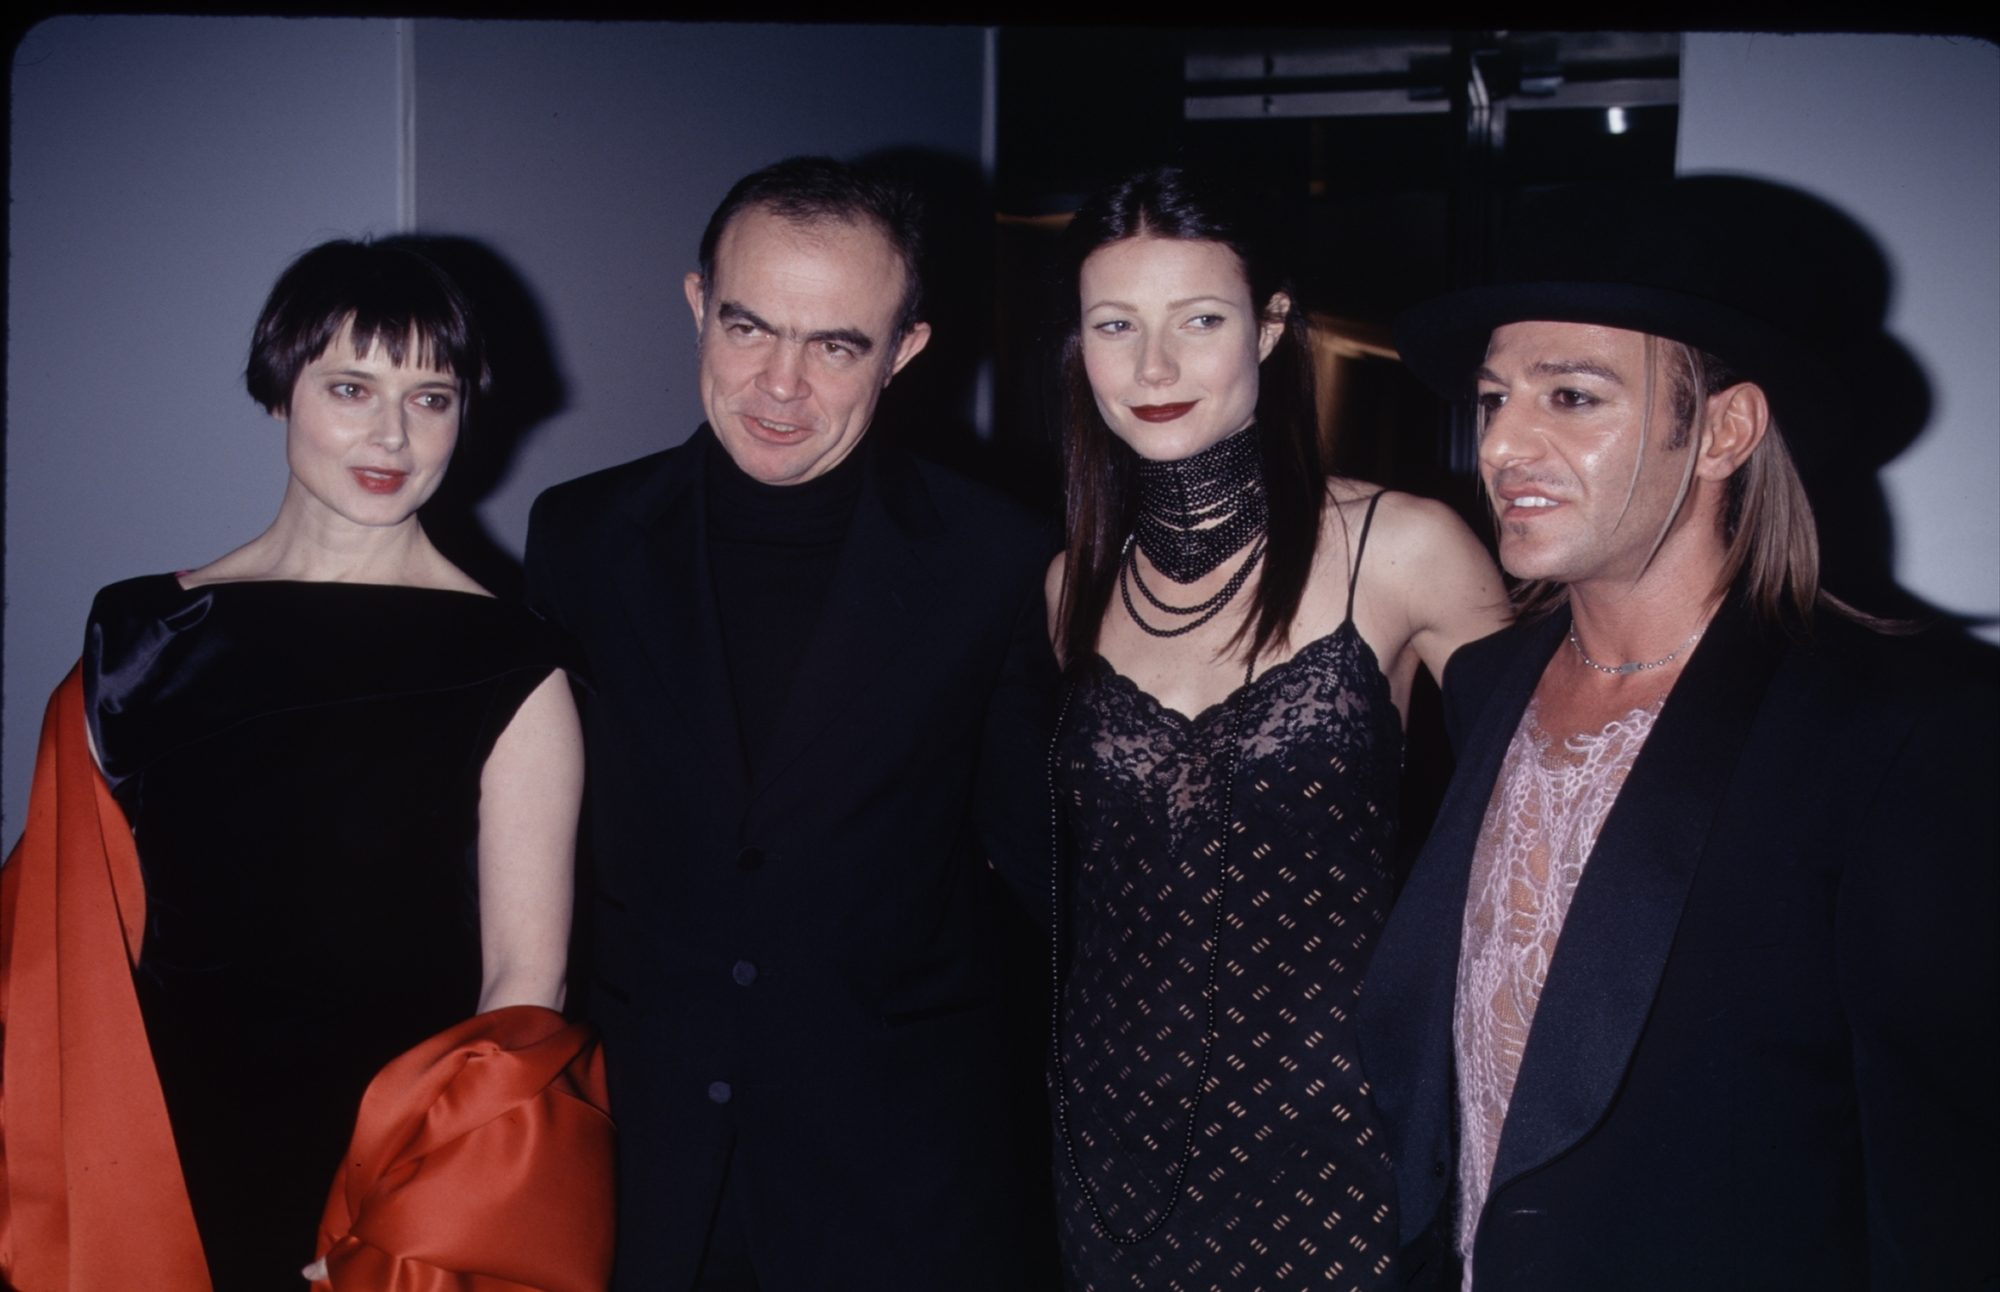 Remember When Gwyneth Paltrow Went Goth?